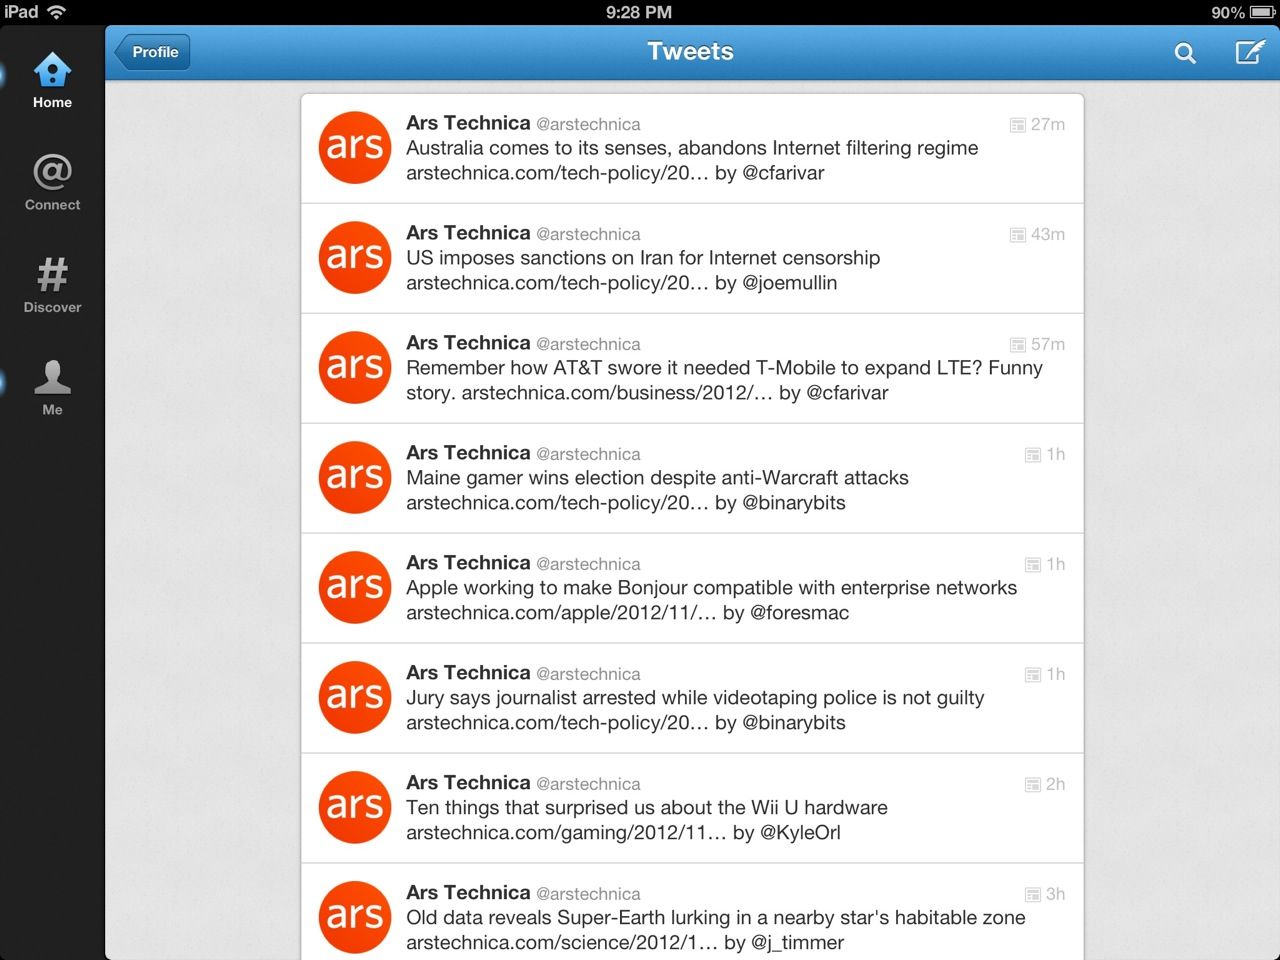 Twitter for iOS is better, but not by much.